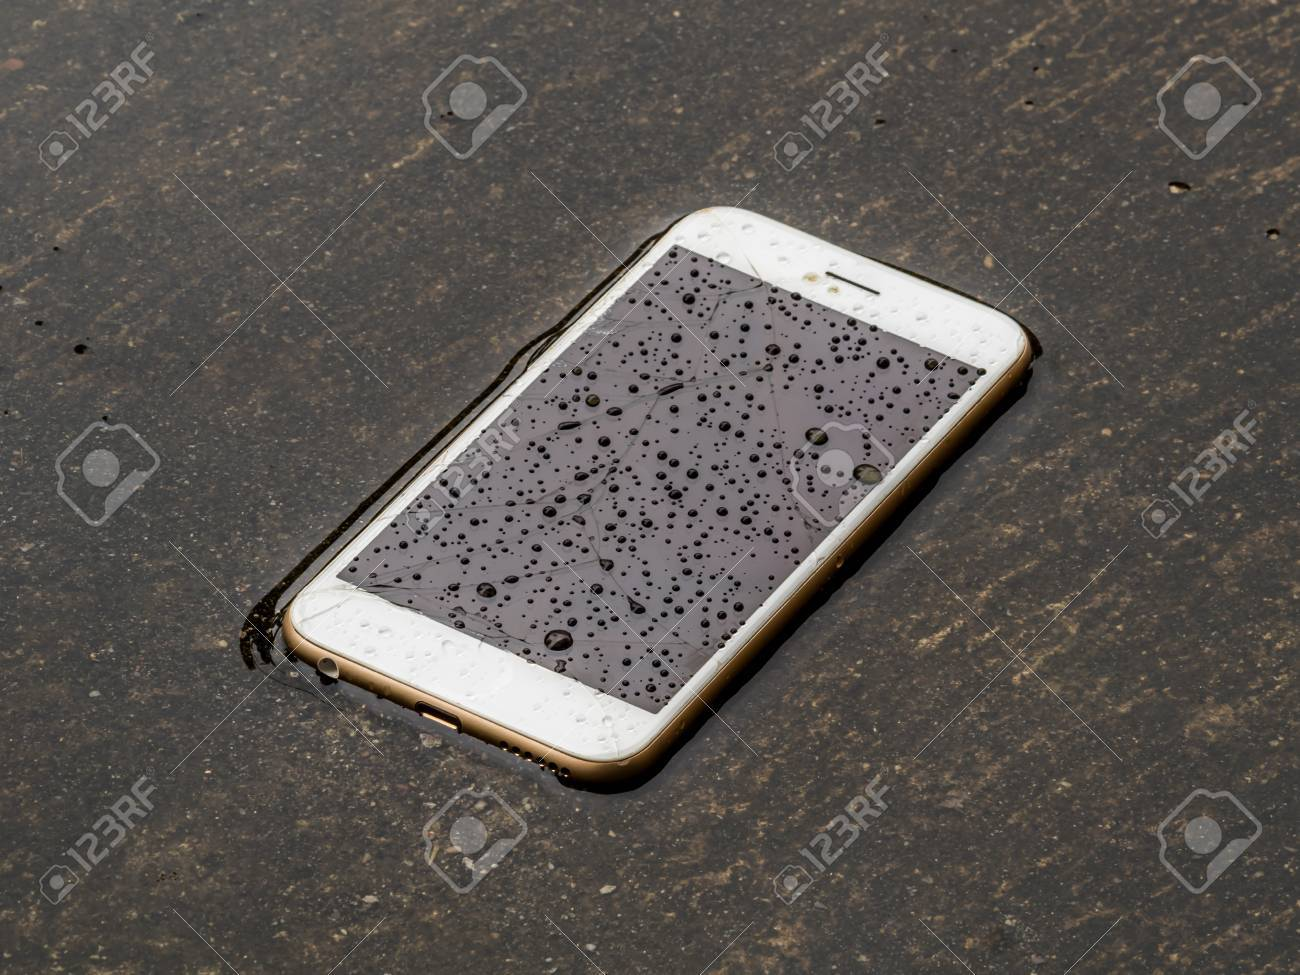 Damage and wet smart phone dropped on flooding floor with water